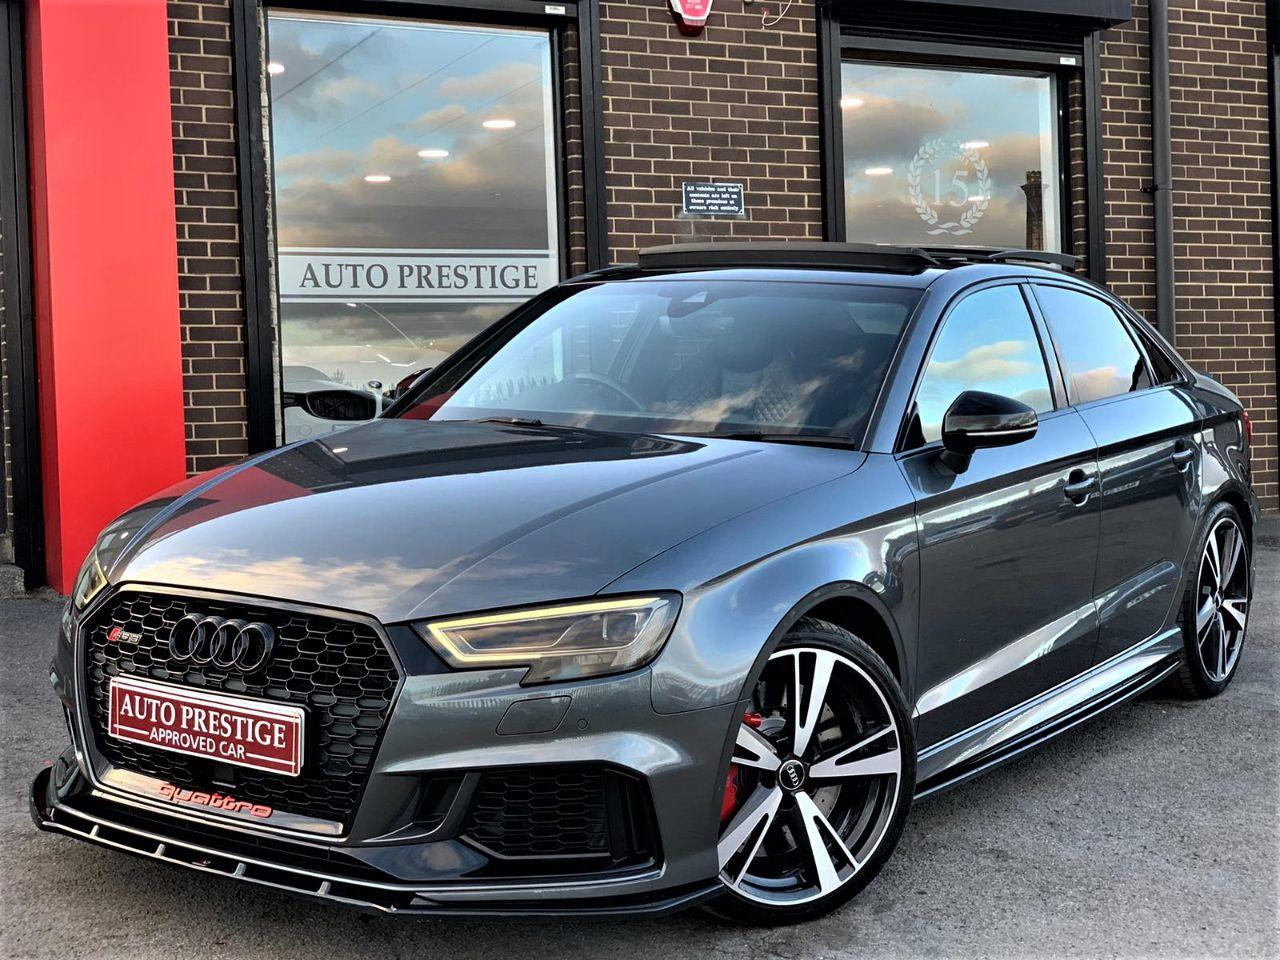 Audi RS3 2.5 Quattro 4dr S Tronic SALOON EVERY CONCEIVABLE EXTRA RARE CAR 67 REG Saloon Petrol Grey at Autoprestige Bradford